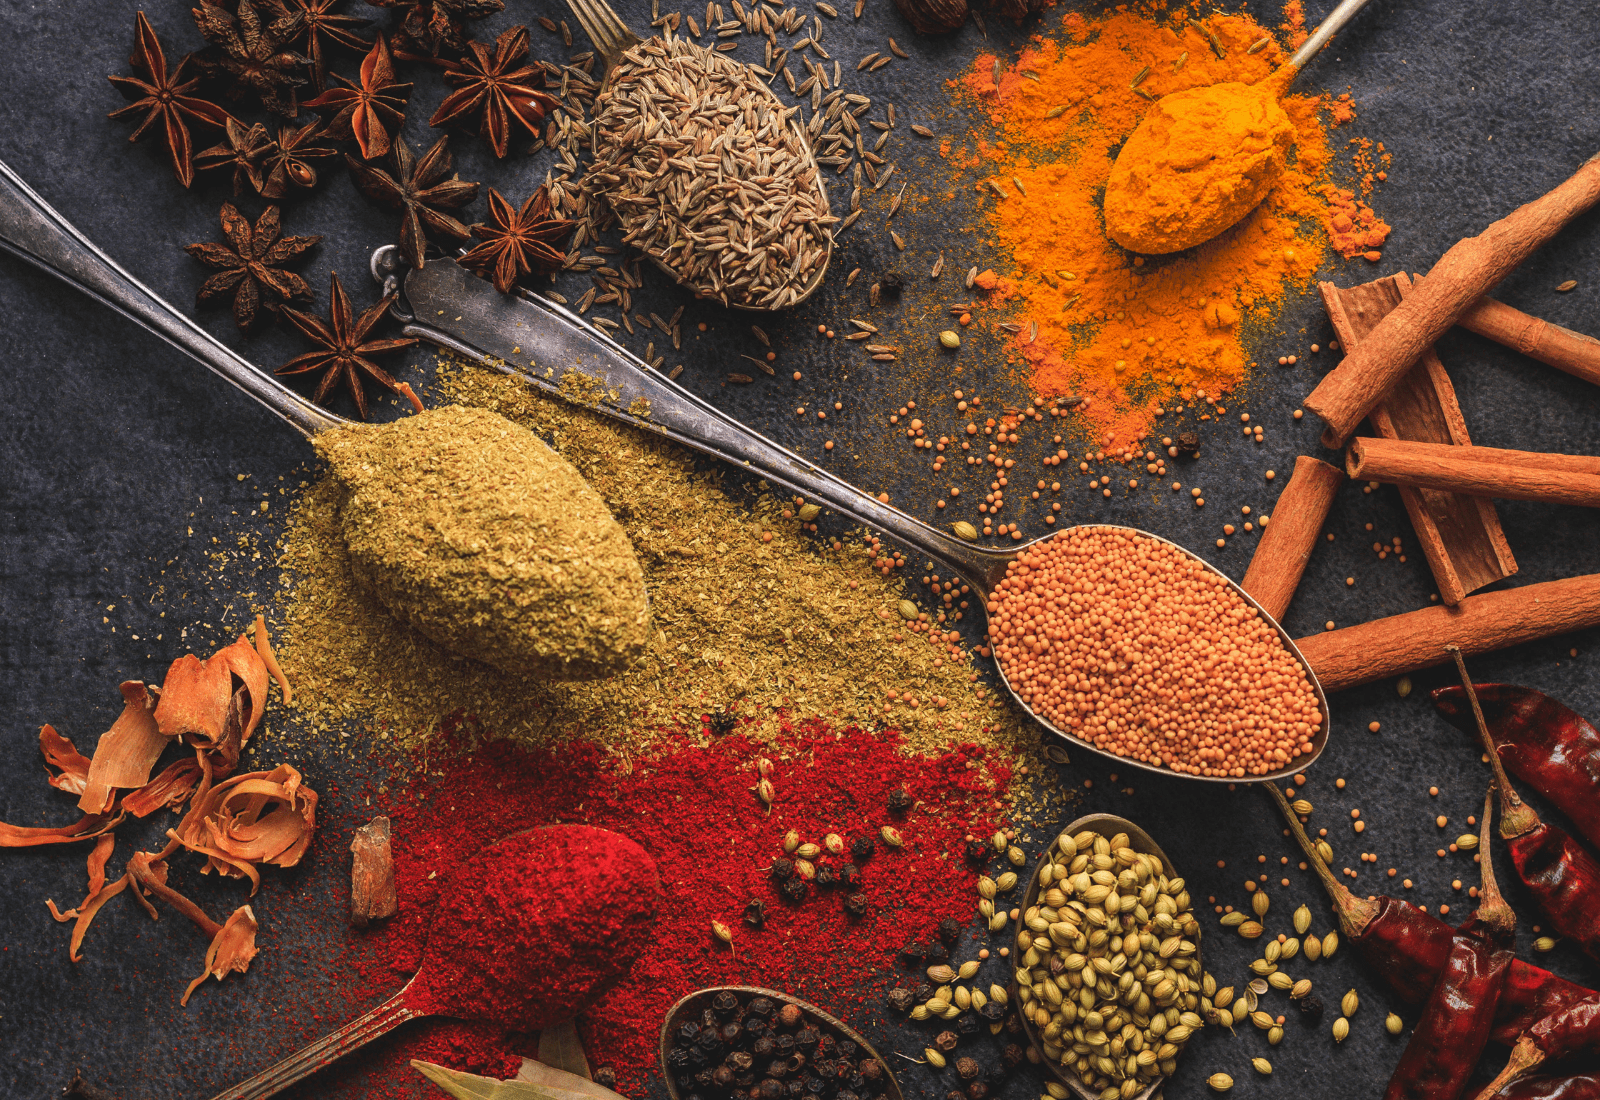 Spices You Need If You Love Indian/Asian Cuisine